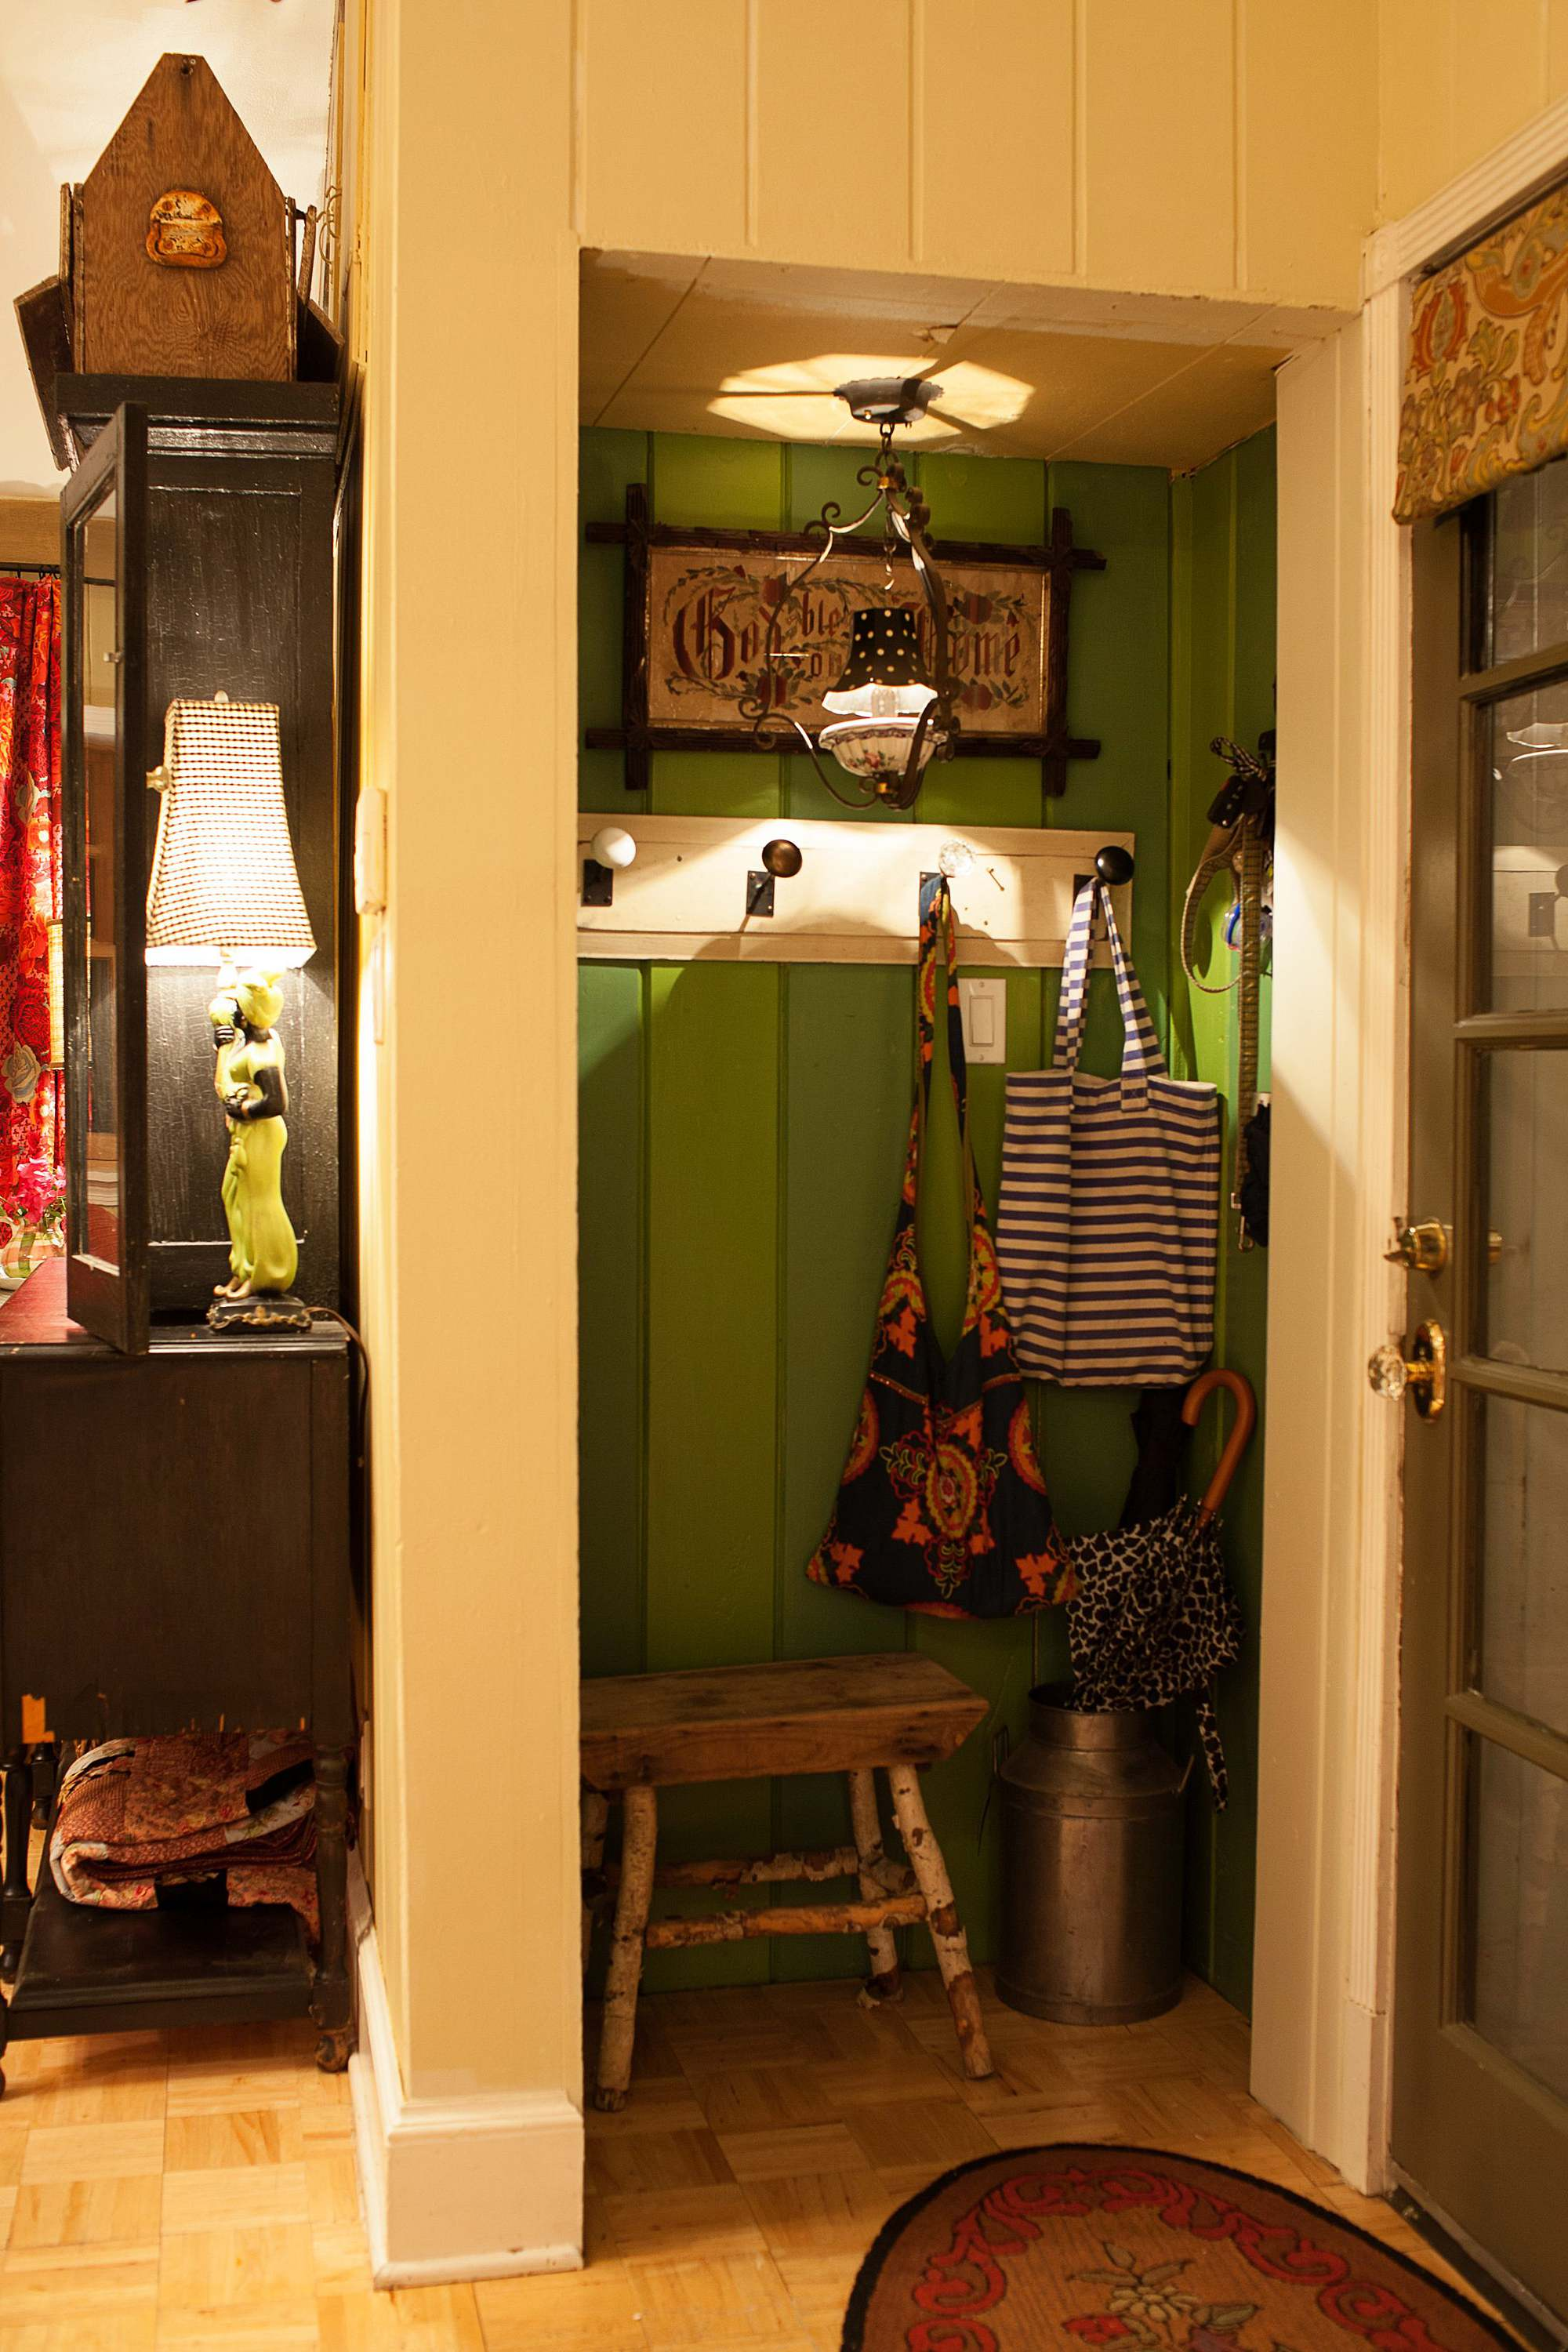 county closet with cozy details English cottage style Phoenix arizona see the home tour!